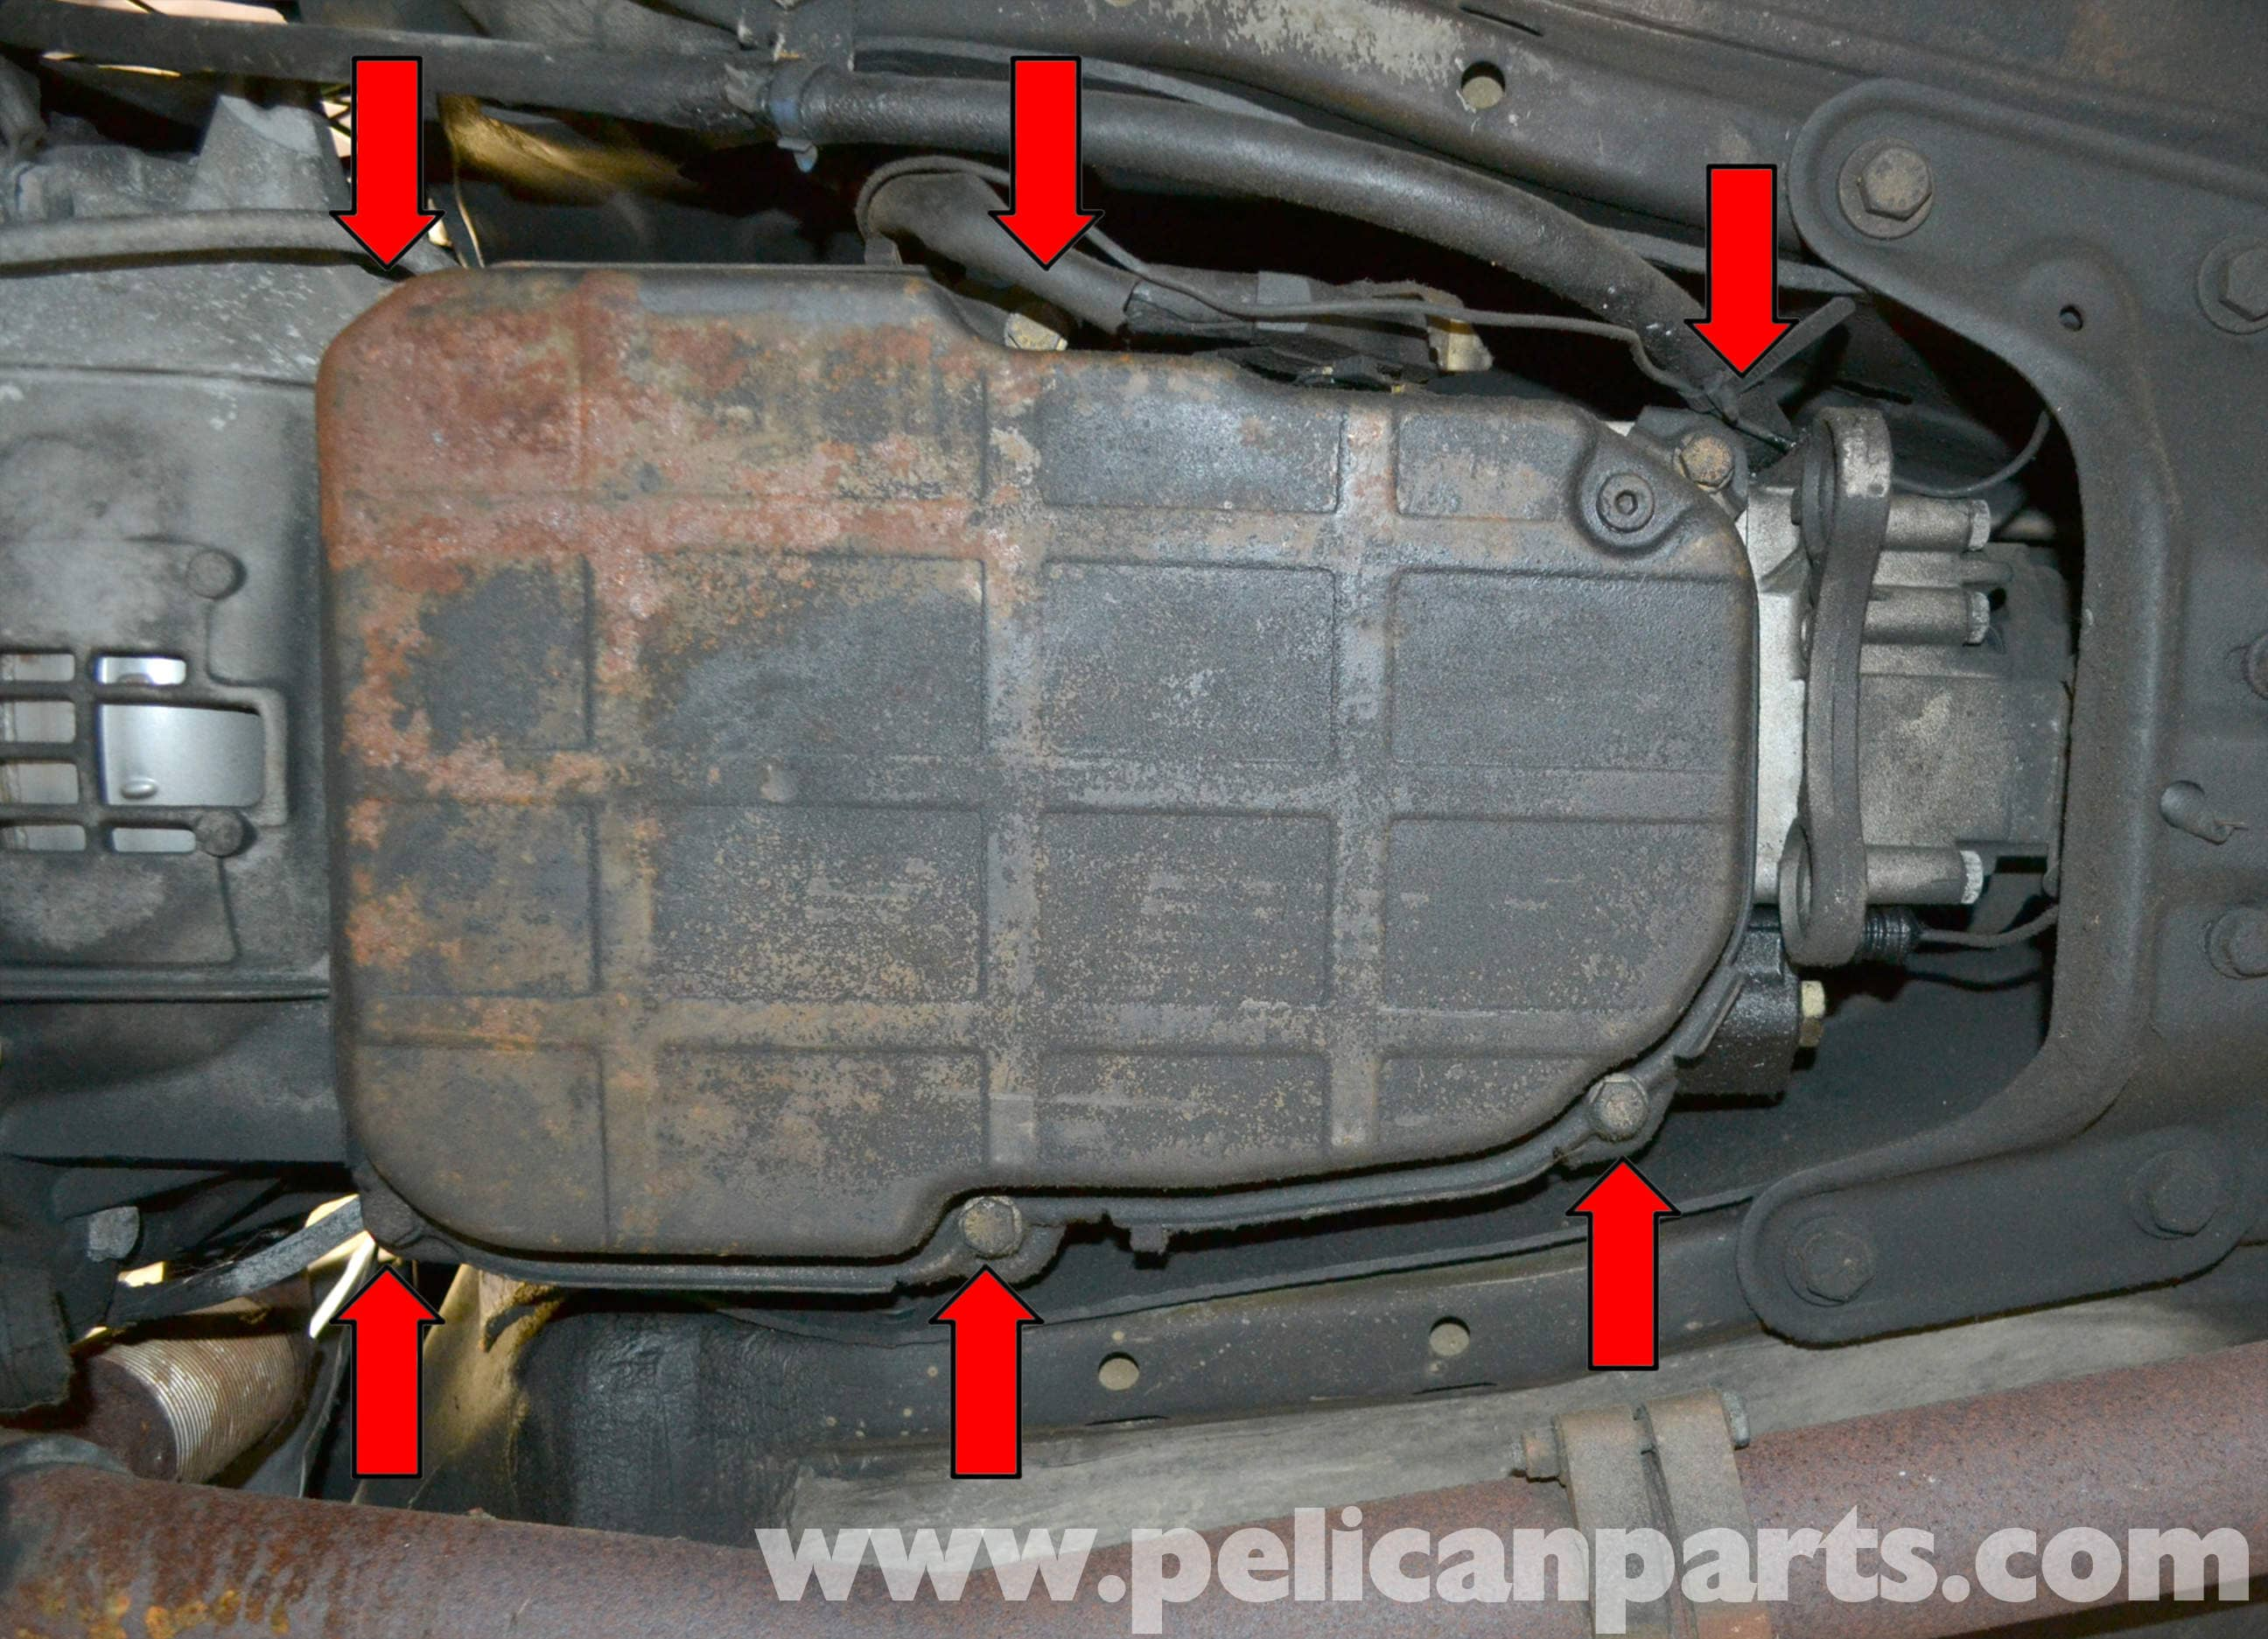 Mercedes-Benz W123 Automatic Transmission Fluid and Filter Change